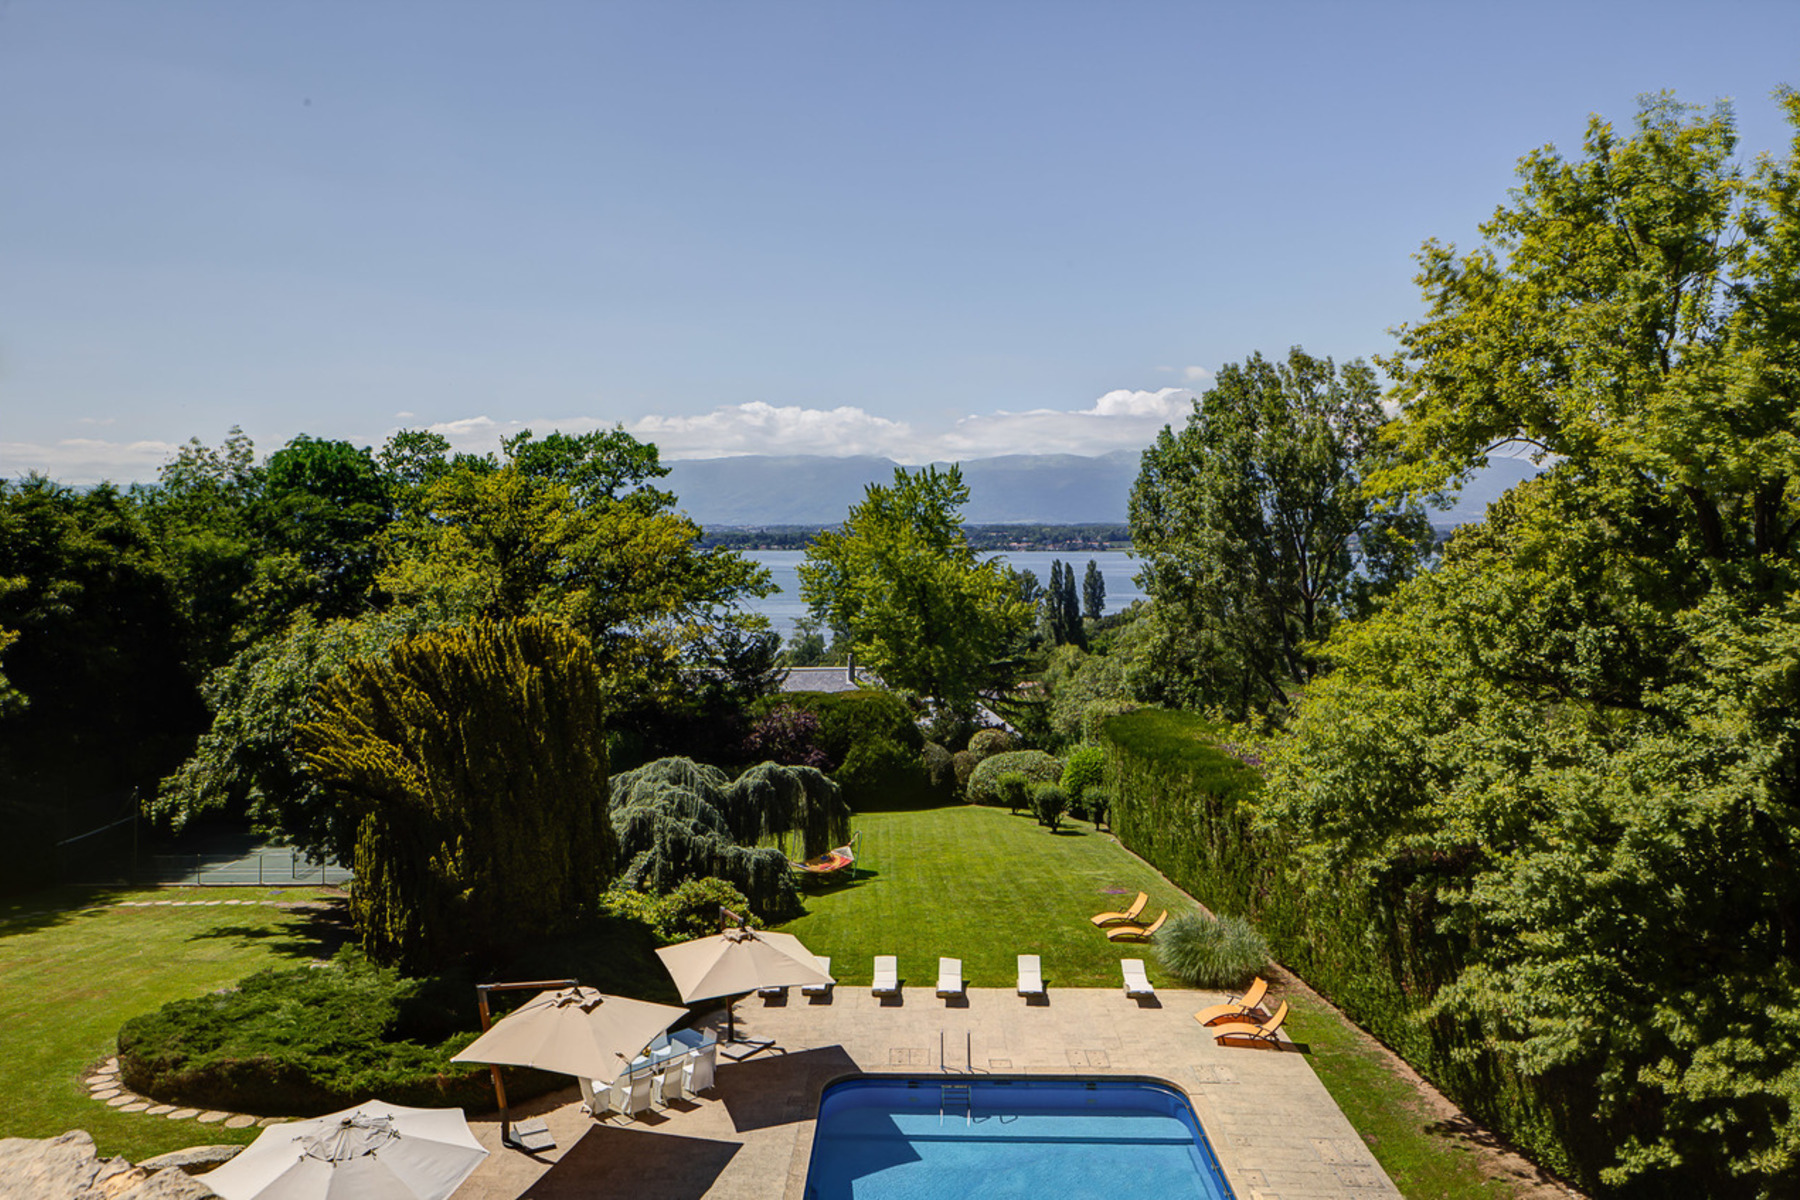 Casa Unifamiliar por un Venta en Superb property with view over the lake Vésenaz, Vesenaz, Geneve, 1222 Suiza